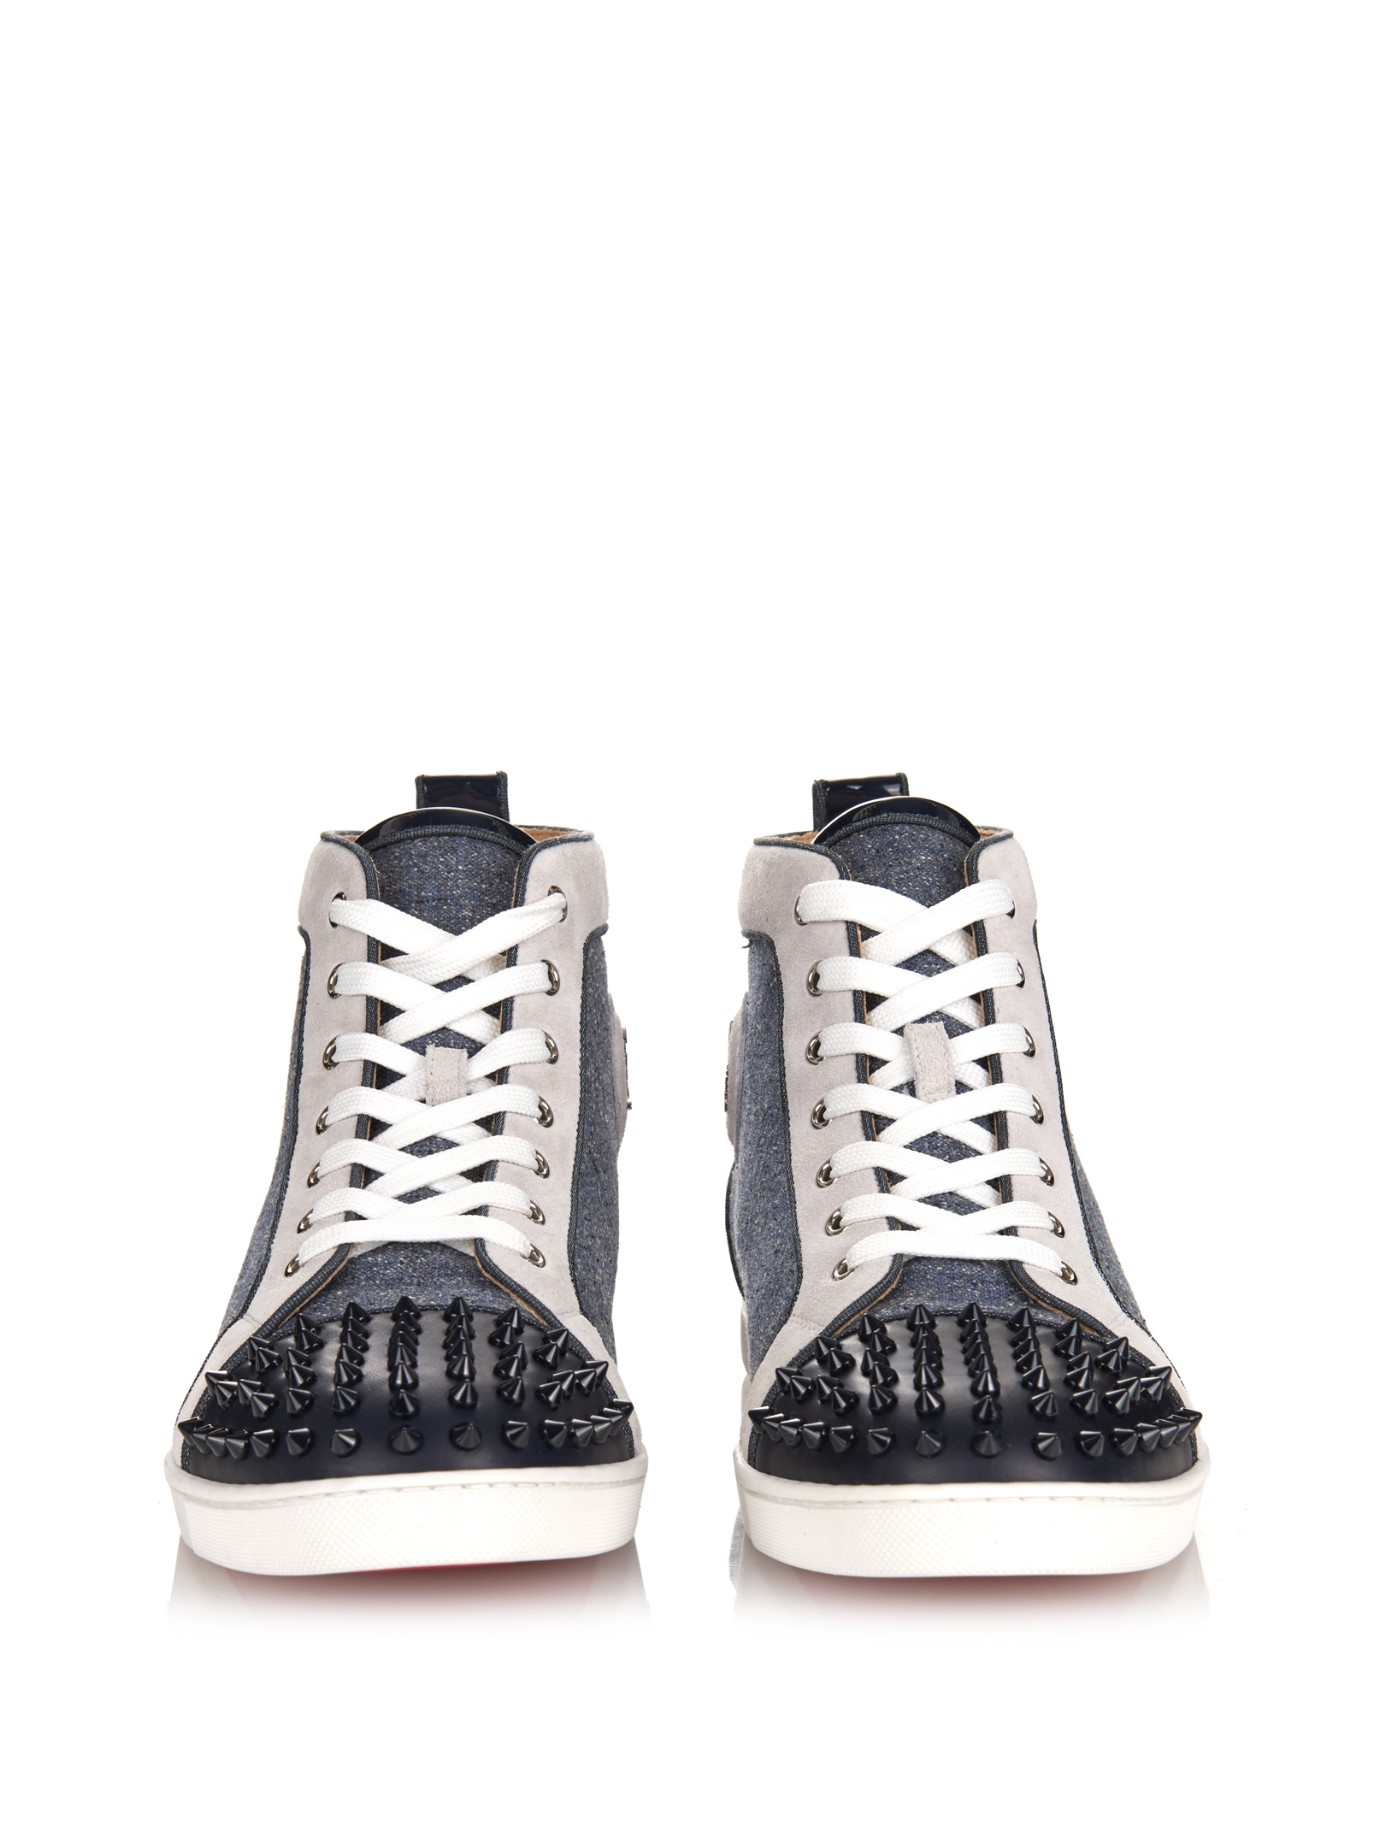 Christian louboutin Bip Bip Orlato Spiked High-Top Sneakers in ...